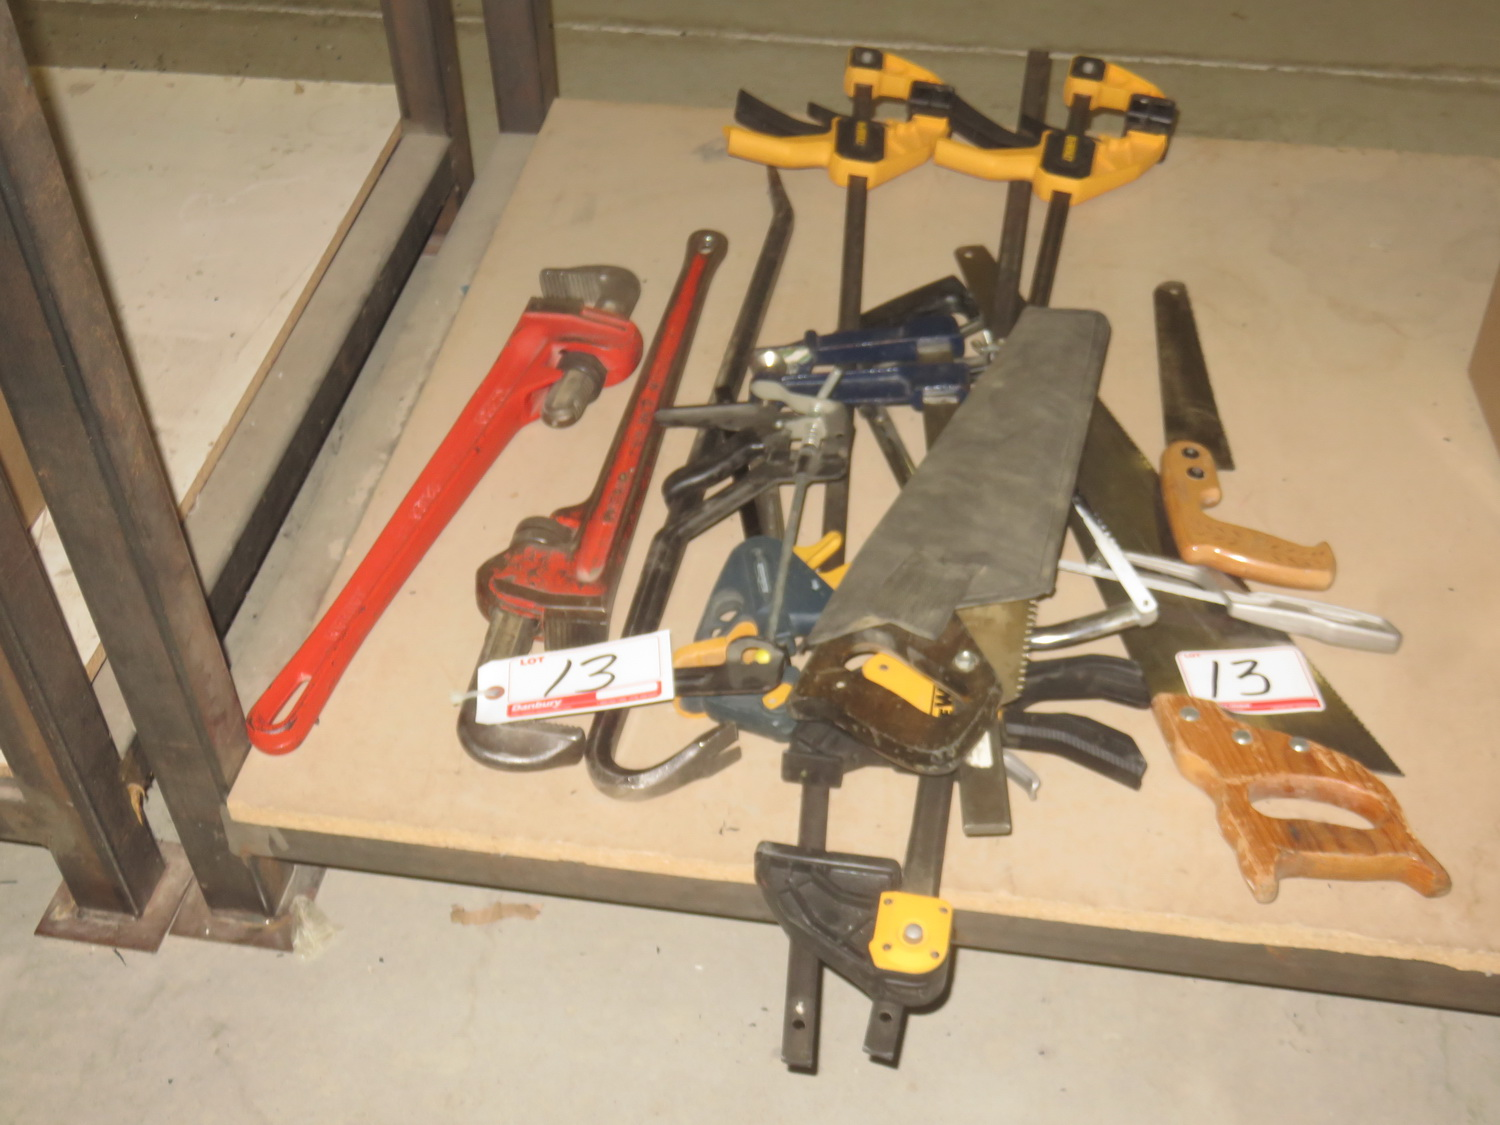 LOT - DEWALT BAR CLAMPS, PIPE WRENCHES, HAND SAWS